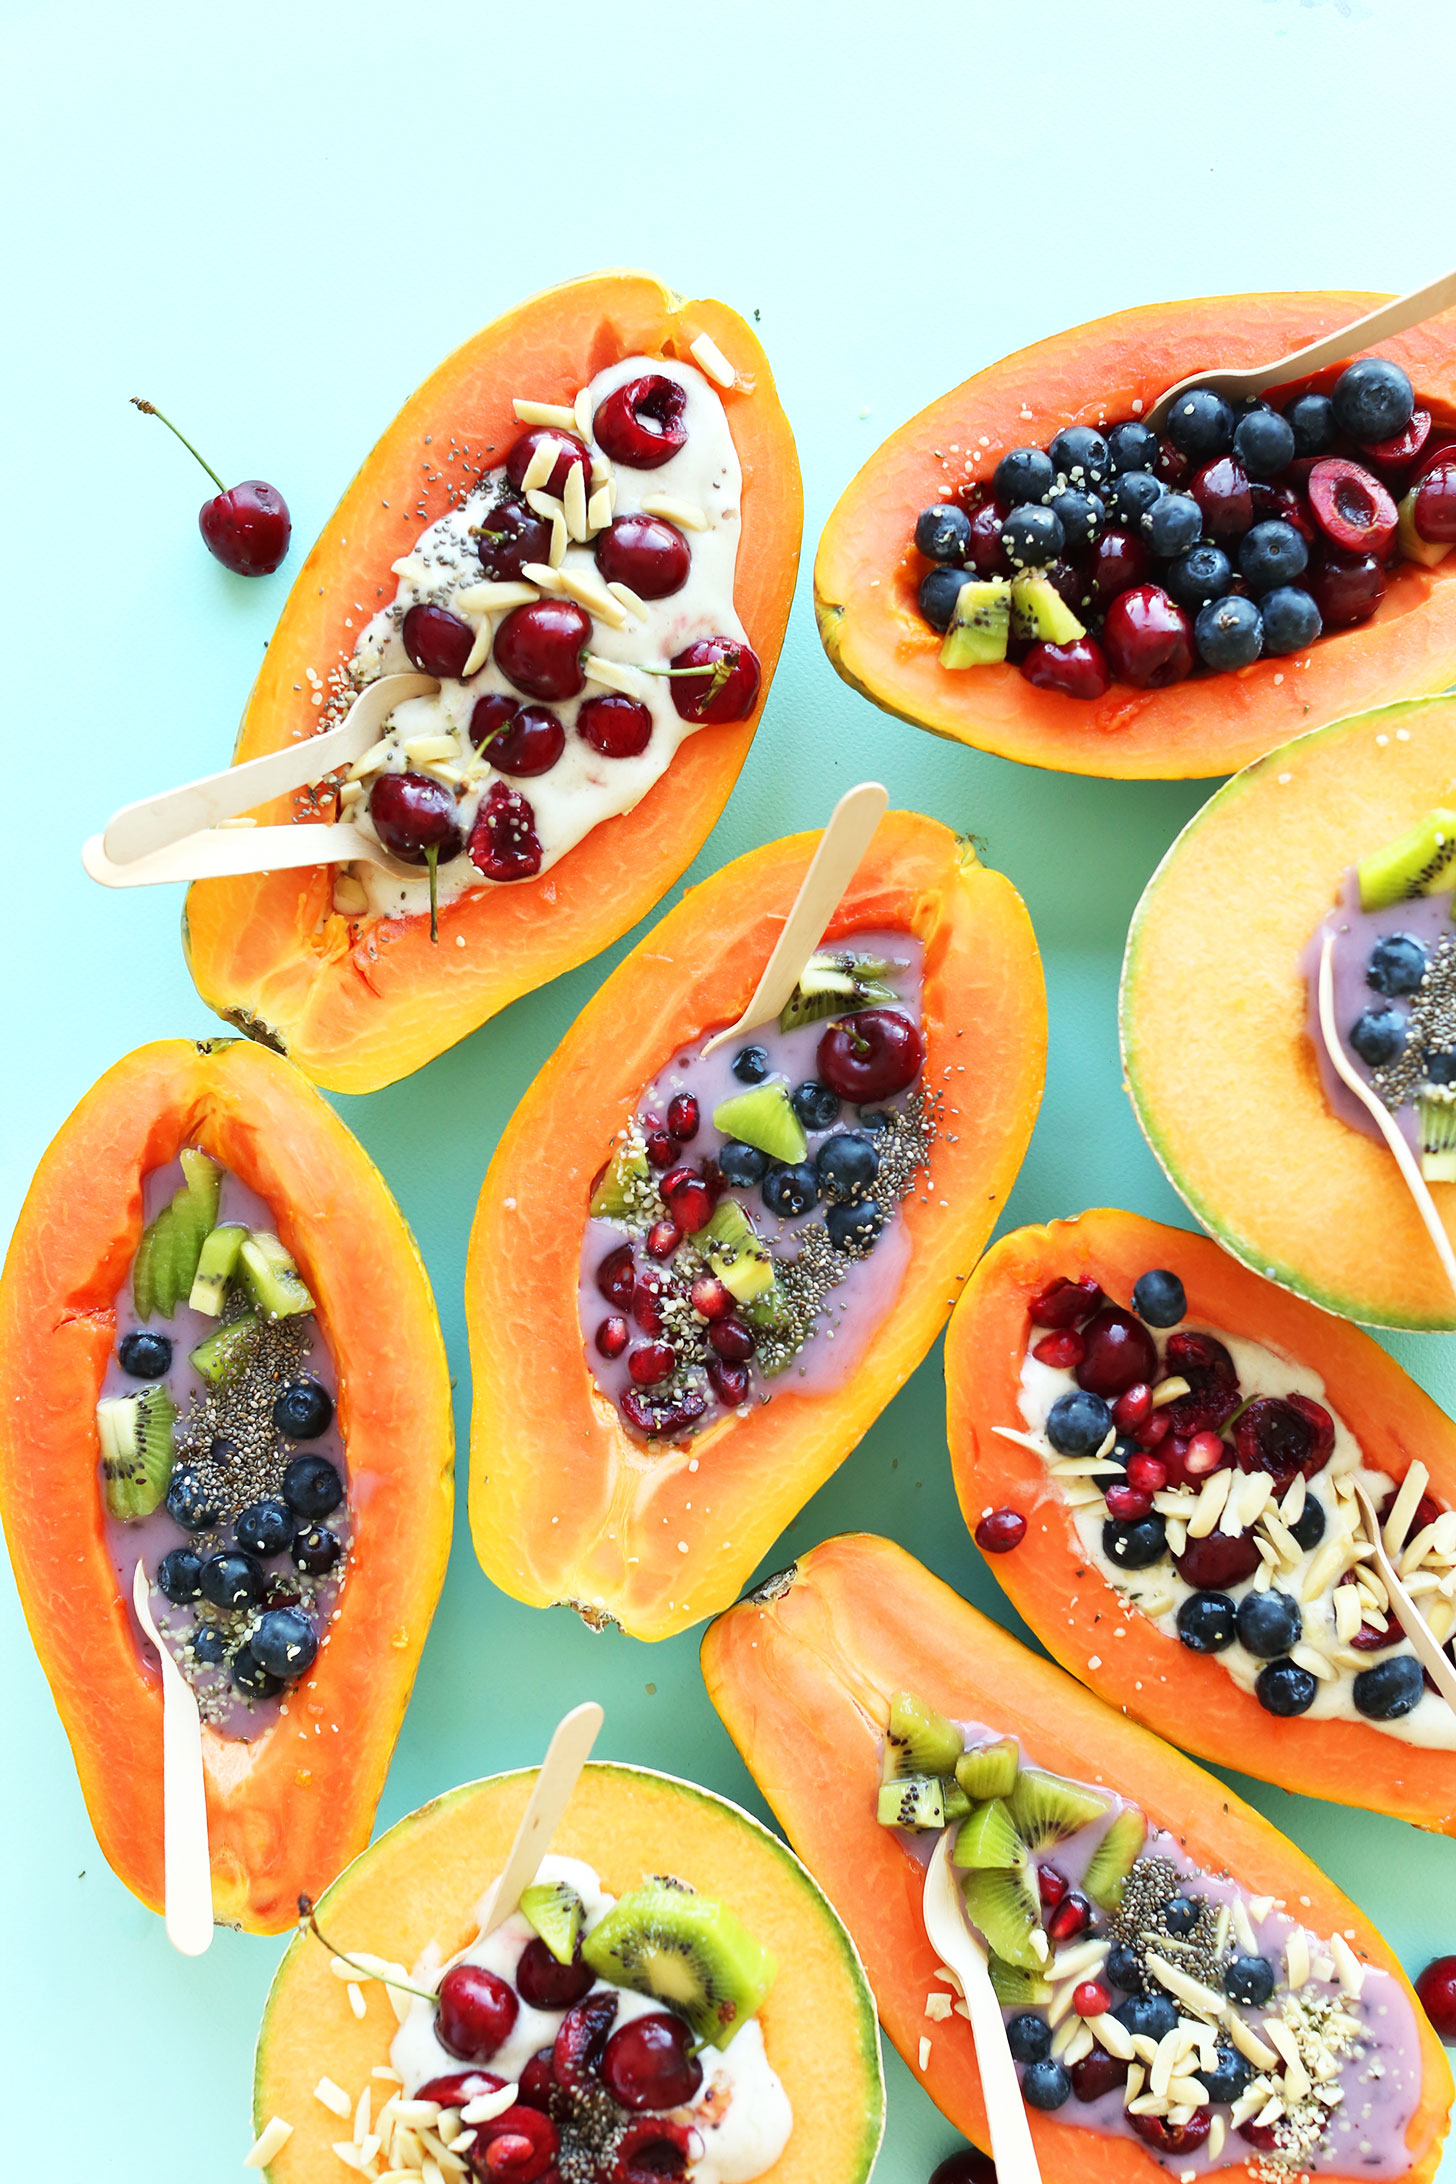 Papaya Boats filled with various toppings for a healthy gluten-free vegan snack